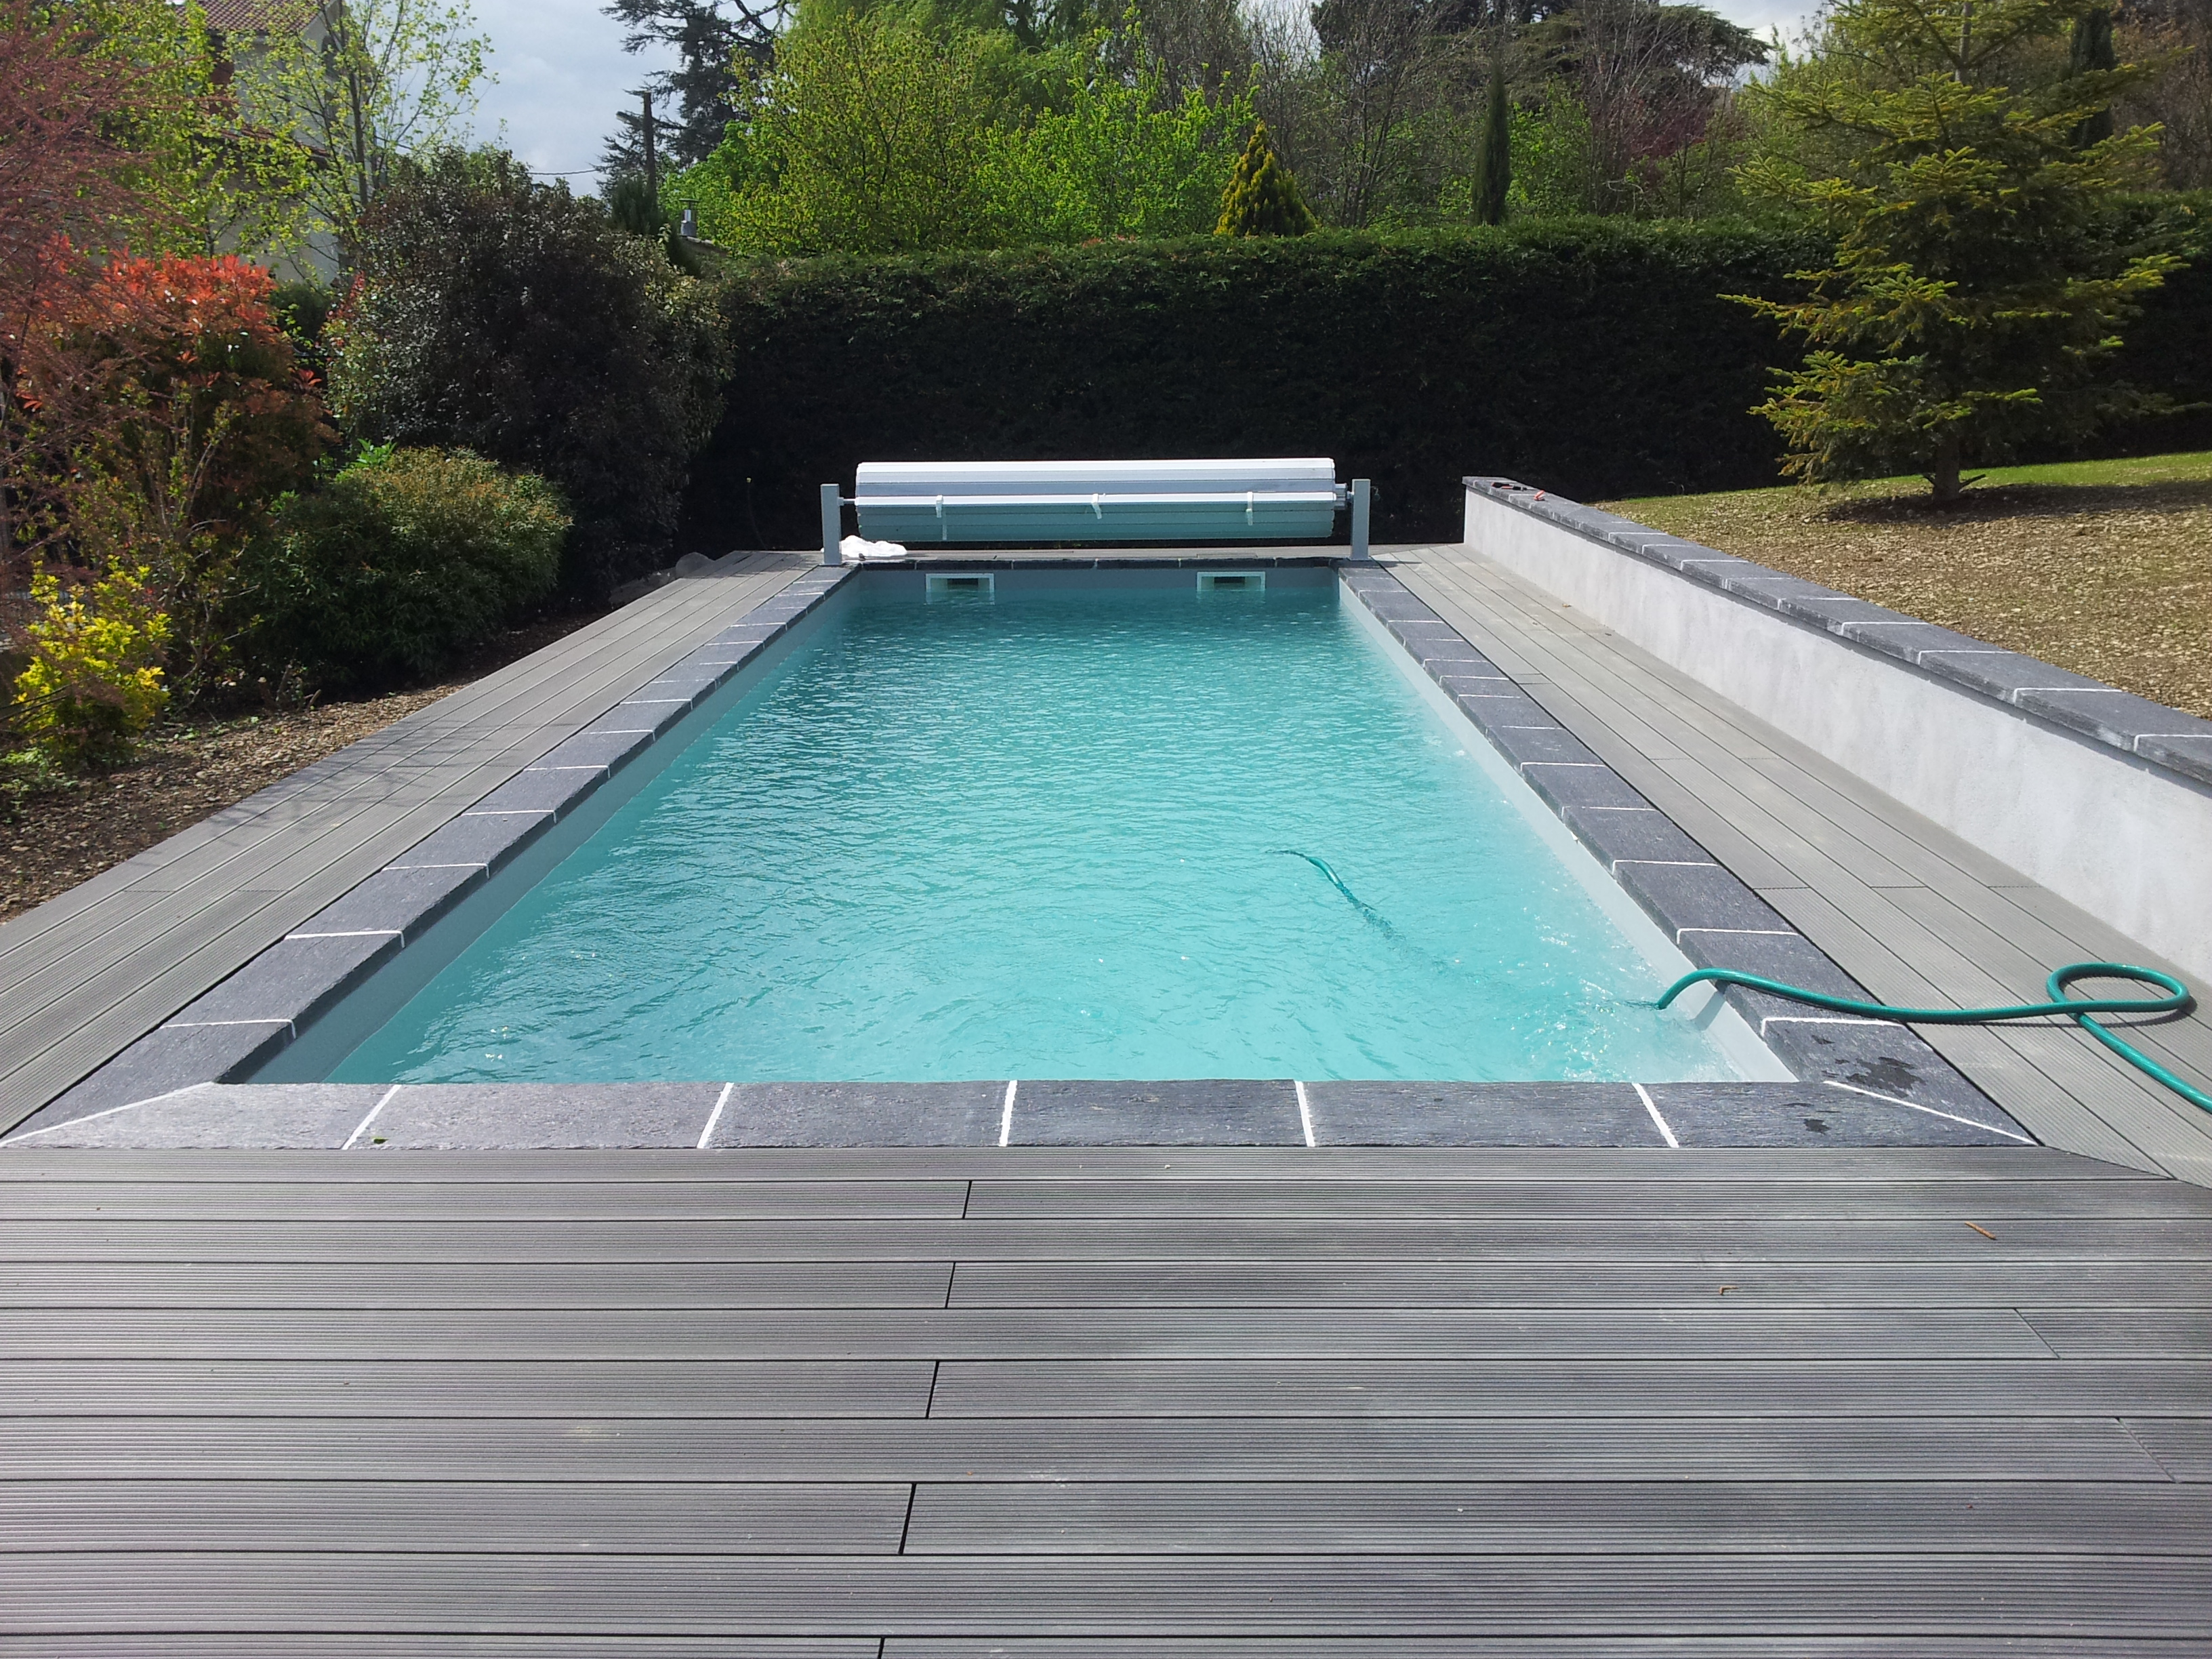 Gris clair r novation piscine rh nes alpes for Piscine bois liner gris